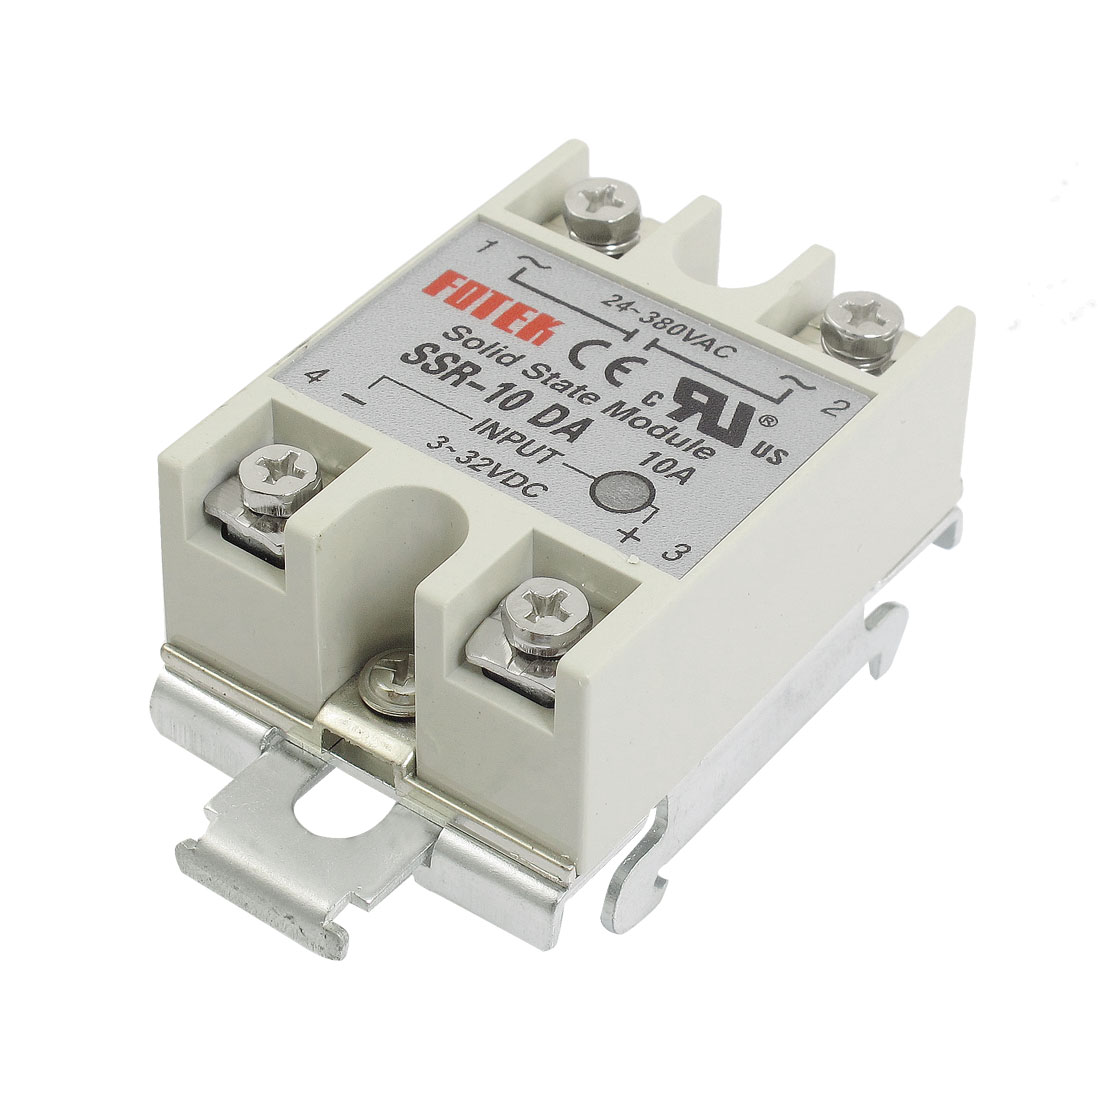 DC-AC 10A 3-32VDC 24-380VAC SSR-10DA Gray Solid State Relay w DIN Rail Base